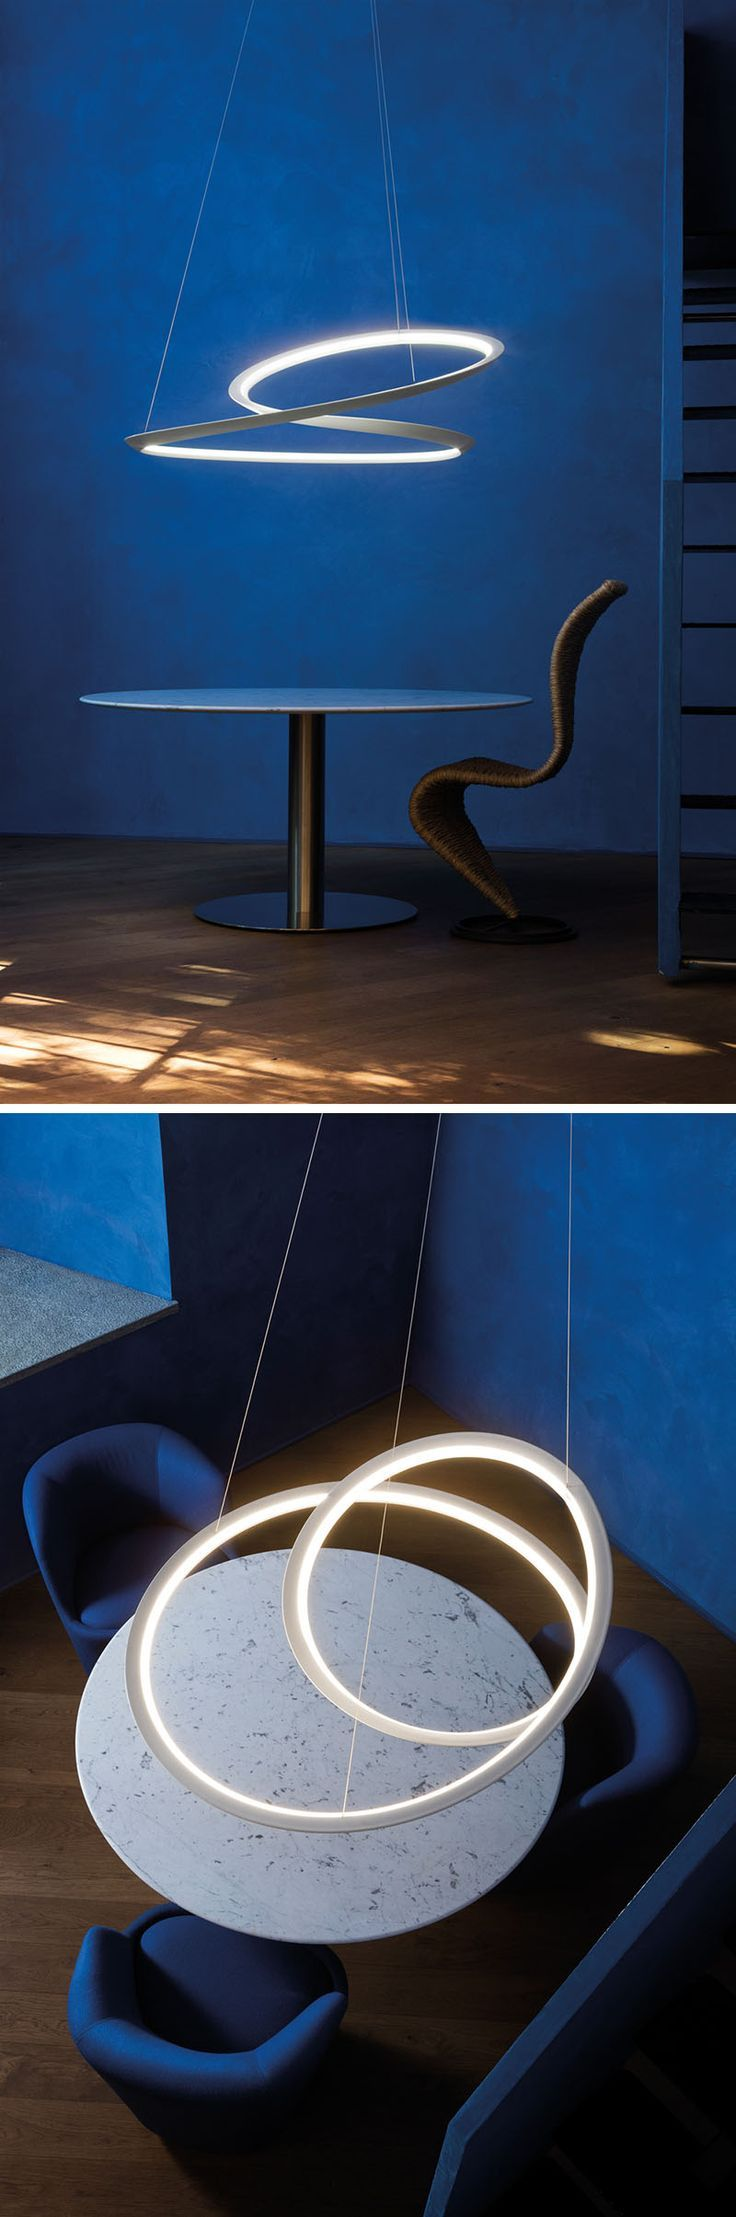 Led night lamp manufacturers - Light Design Arihiro Miyake Creates A Sculptural Mobius Strip Inspired Lamp